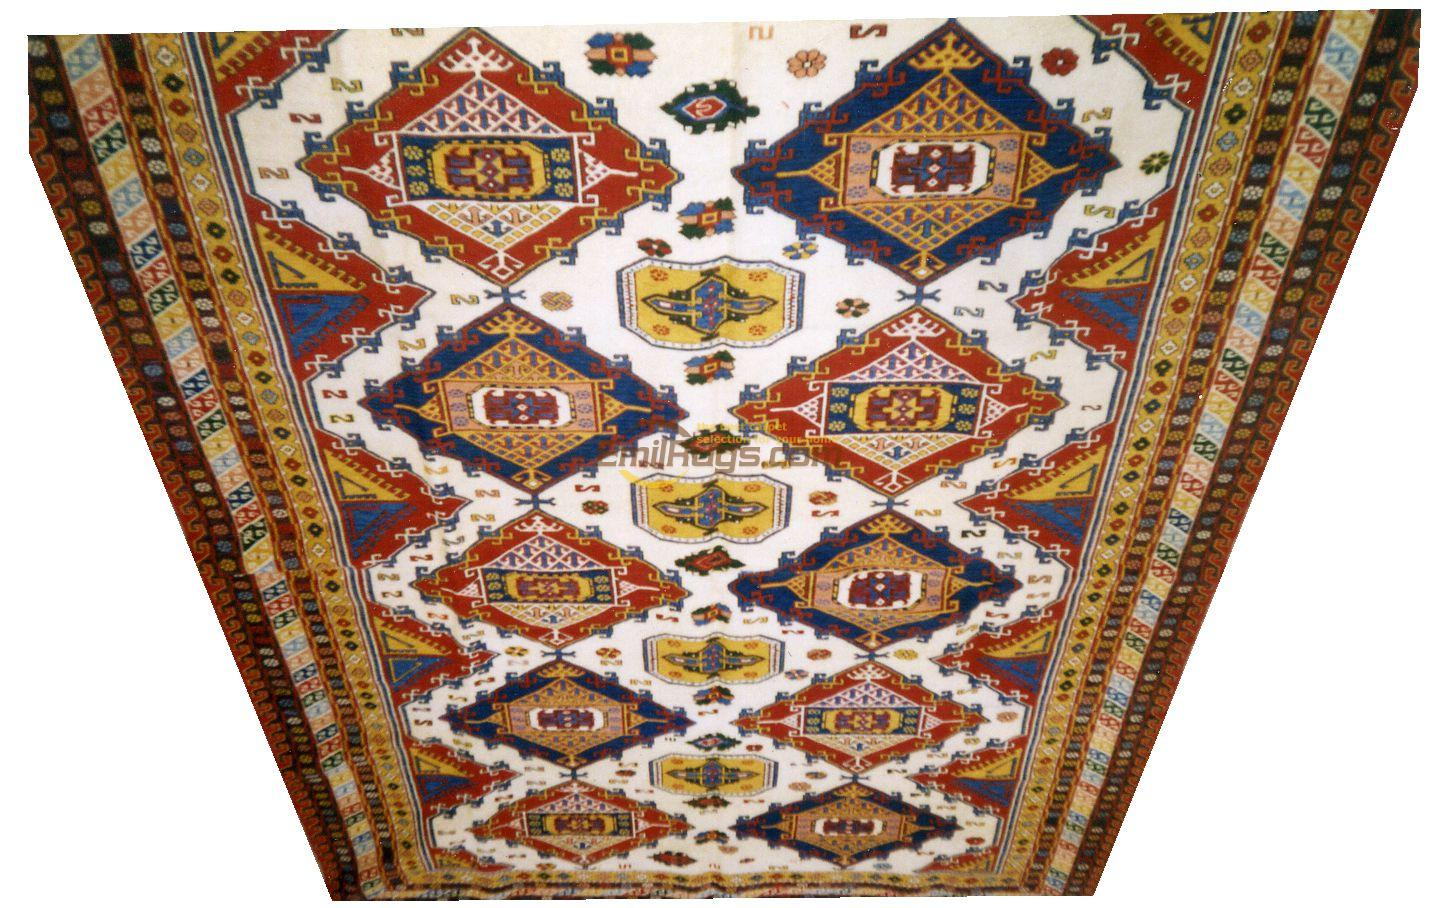 Antique Chinese Hand-made Wool Home Decore Big For Living Room Antique Wool Knitting soumak CarpetsAntique Chinese Hand-made Wool Home Decore Big For Living Room Antique Wool Knitting soumak Carpets